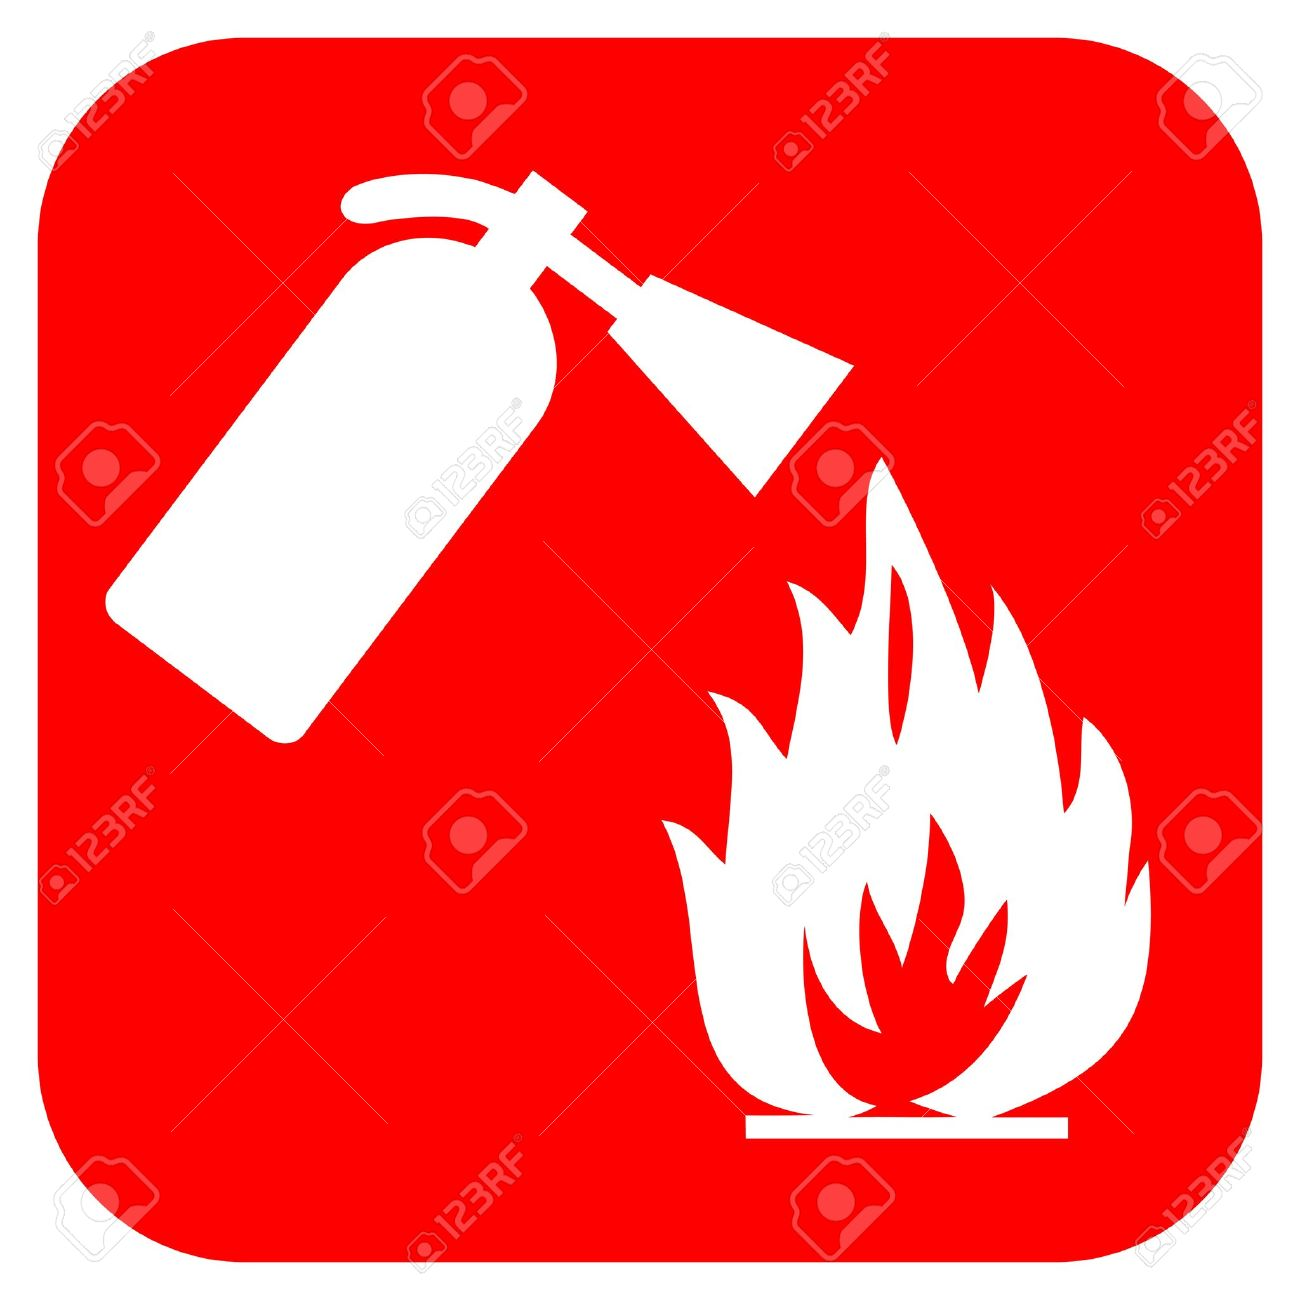 fire safety logo stock photo, picture and royalty free image. image